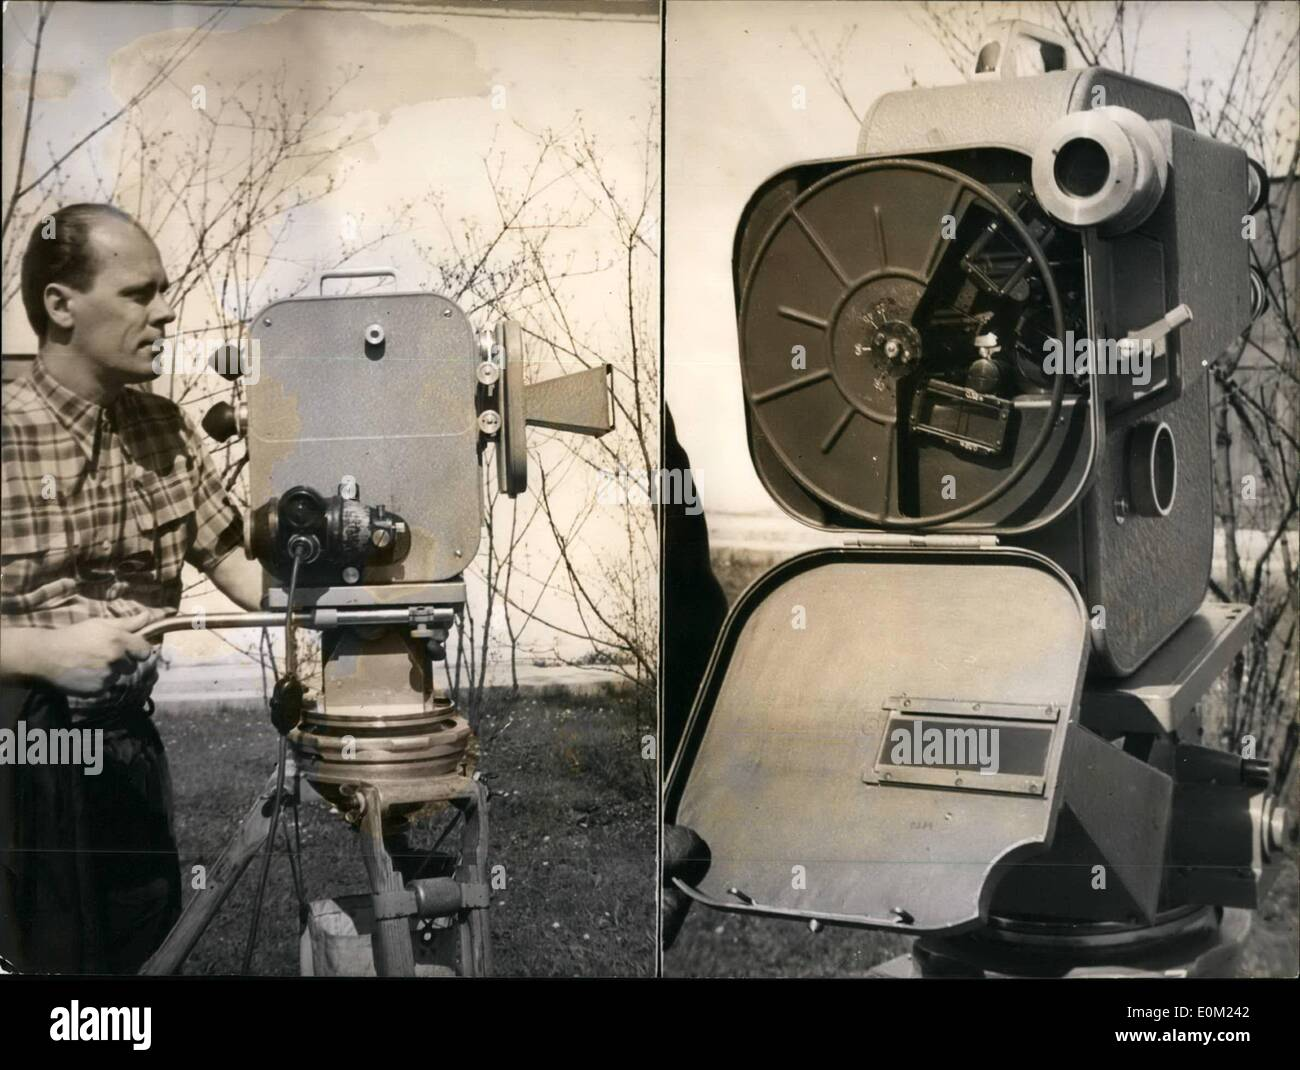 Apr. 04, 1953 - Geiselgasteig takes colour-3-dimensional pictures. Europe's most up to-date and most expensive camera is presently to be seen on the Geiselgasteig film grounds. The new ''stero-camera'' a Zeiss Ikon, was developed by scientists in more than 20 years of research. Kurt Gewissen, the experienced man from Hamburg will practice a colour 3-dimensional film, in order to take advantage of this camera. Margot Mielscher and Wastl Witt play the dominate role in connection with the famous October Festival. Our pictures show: Left: Kurt Gewisson working on the plastic Zoiss Ikon camera - Stock Image